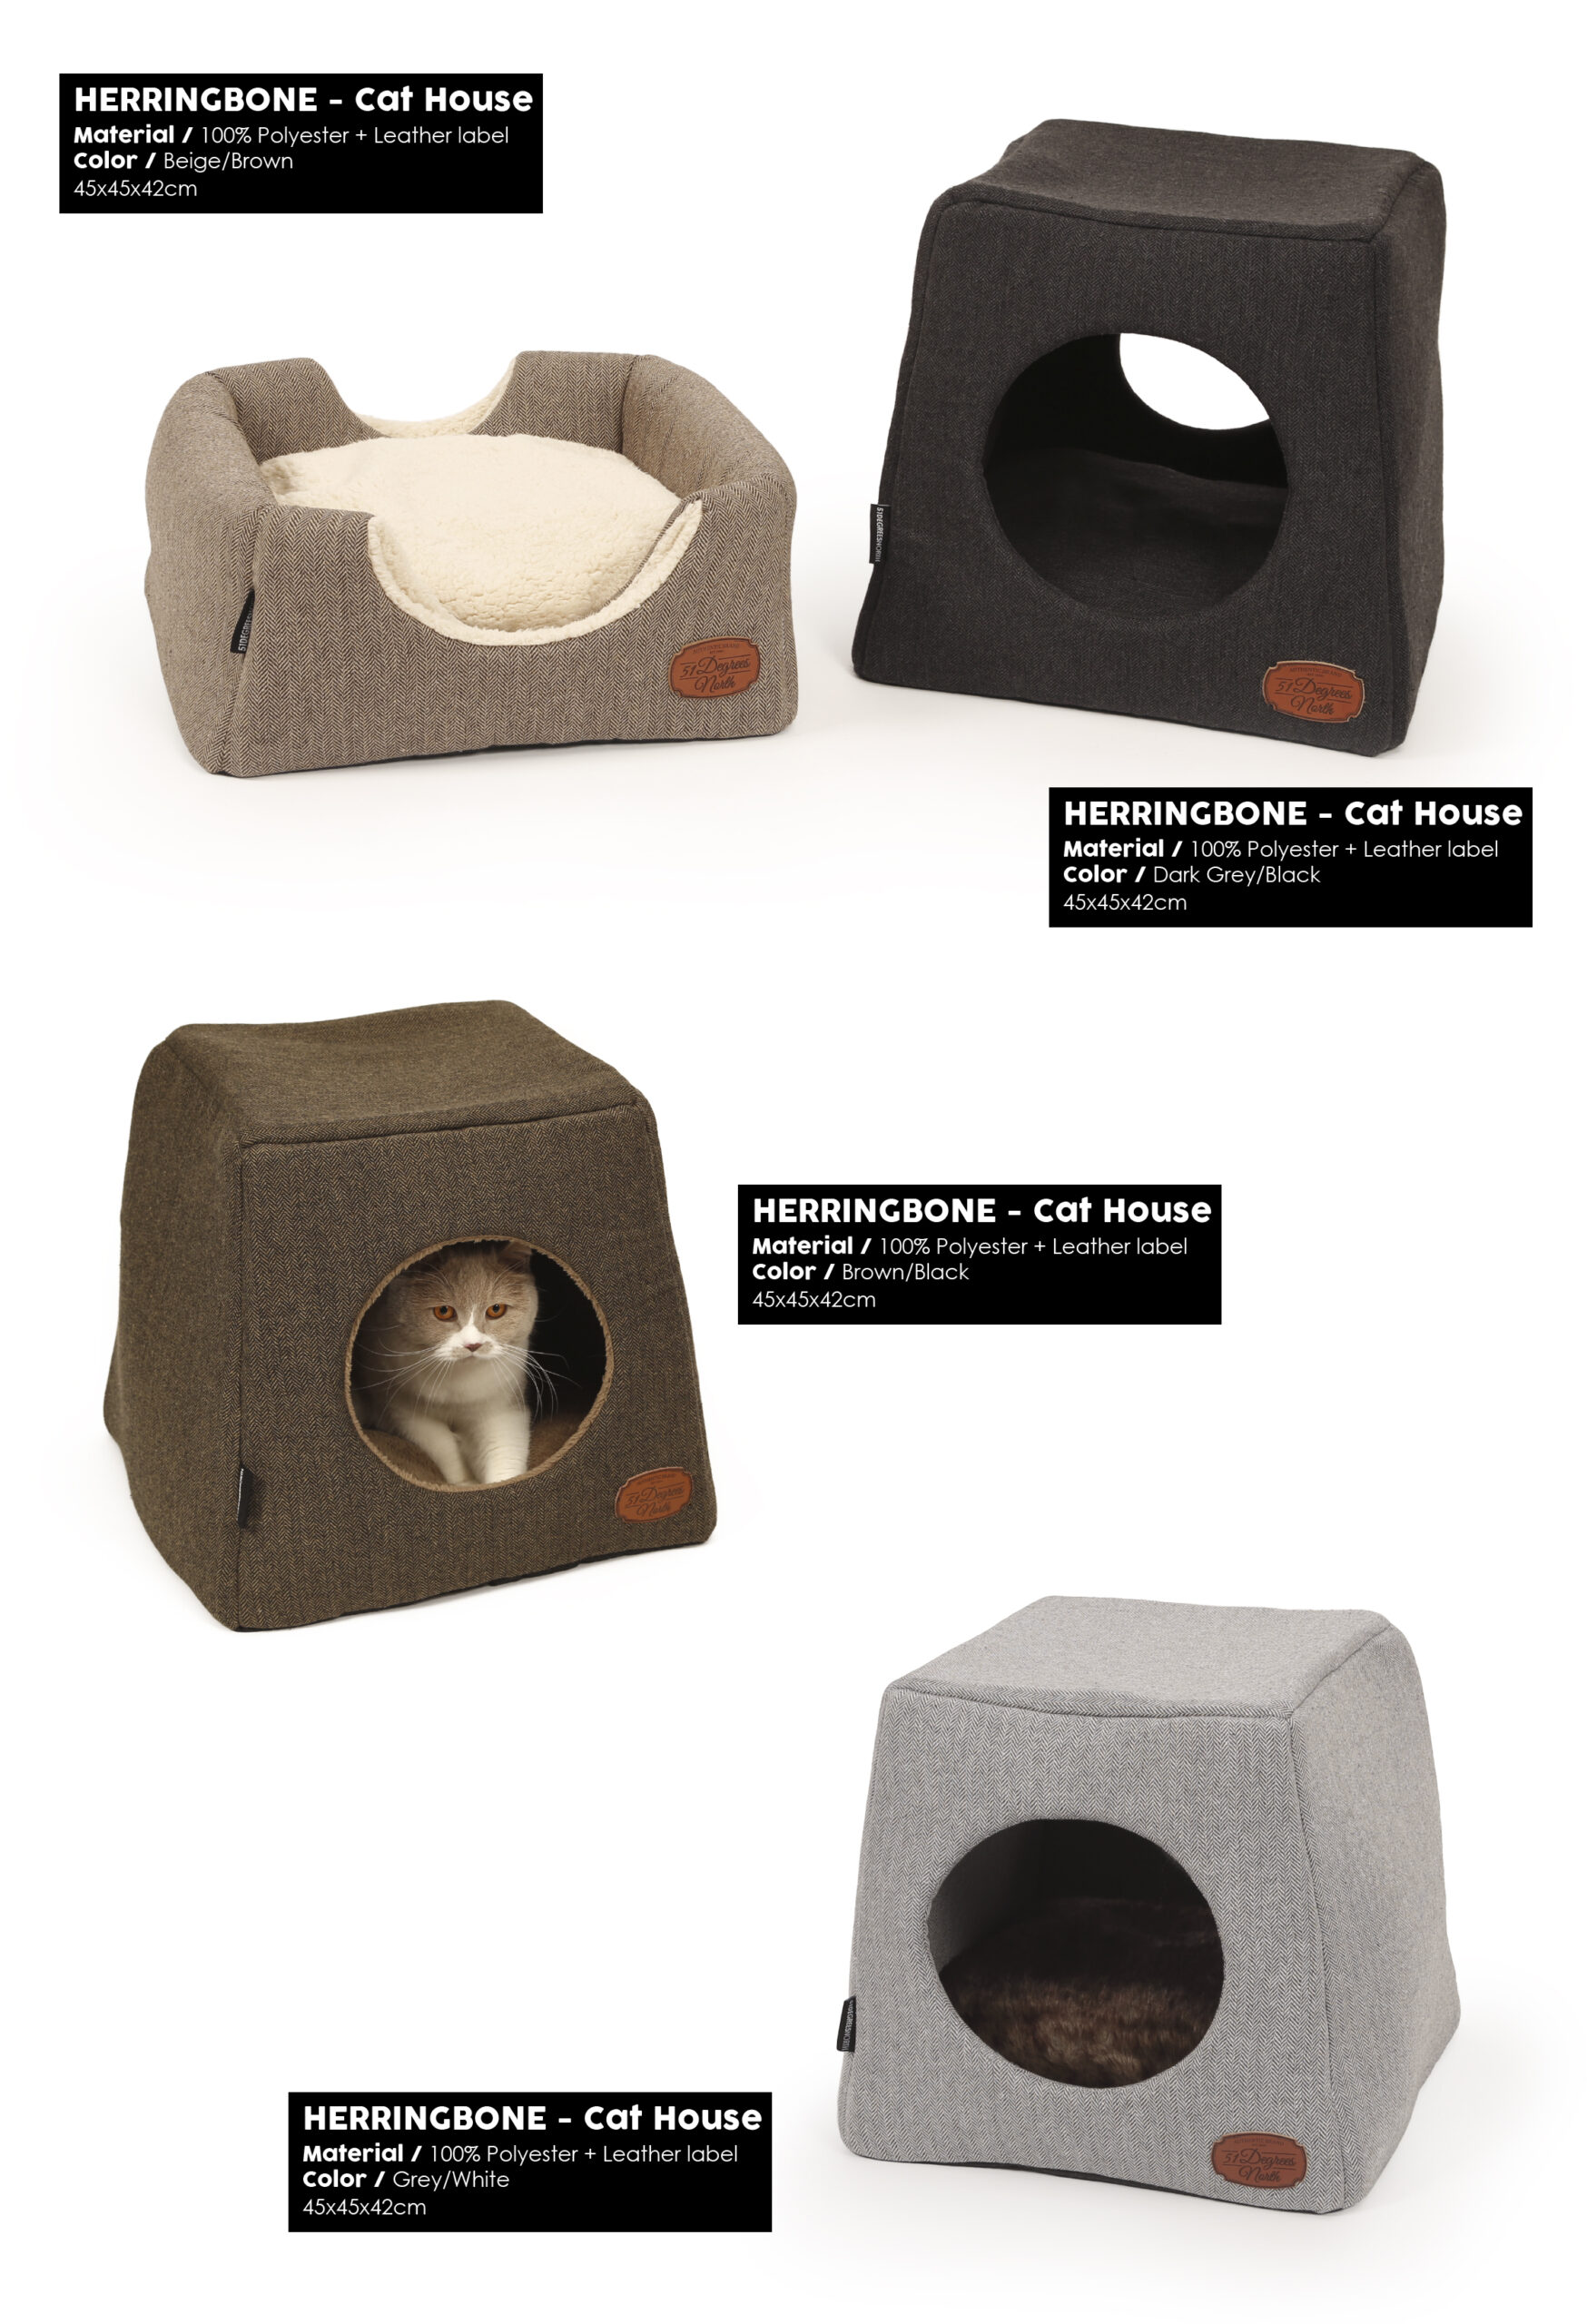 51DN - Herringbone - Cat House